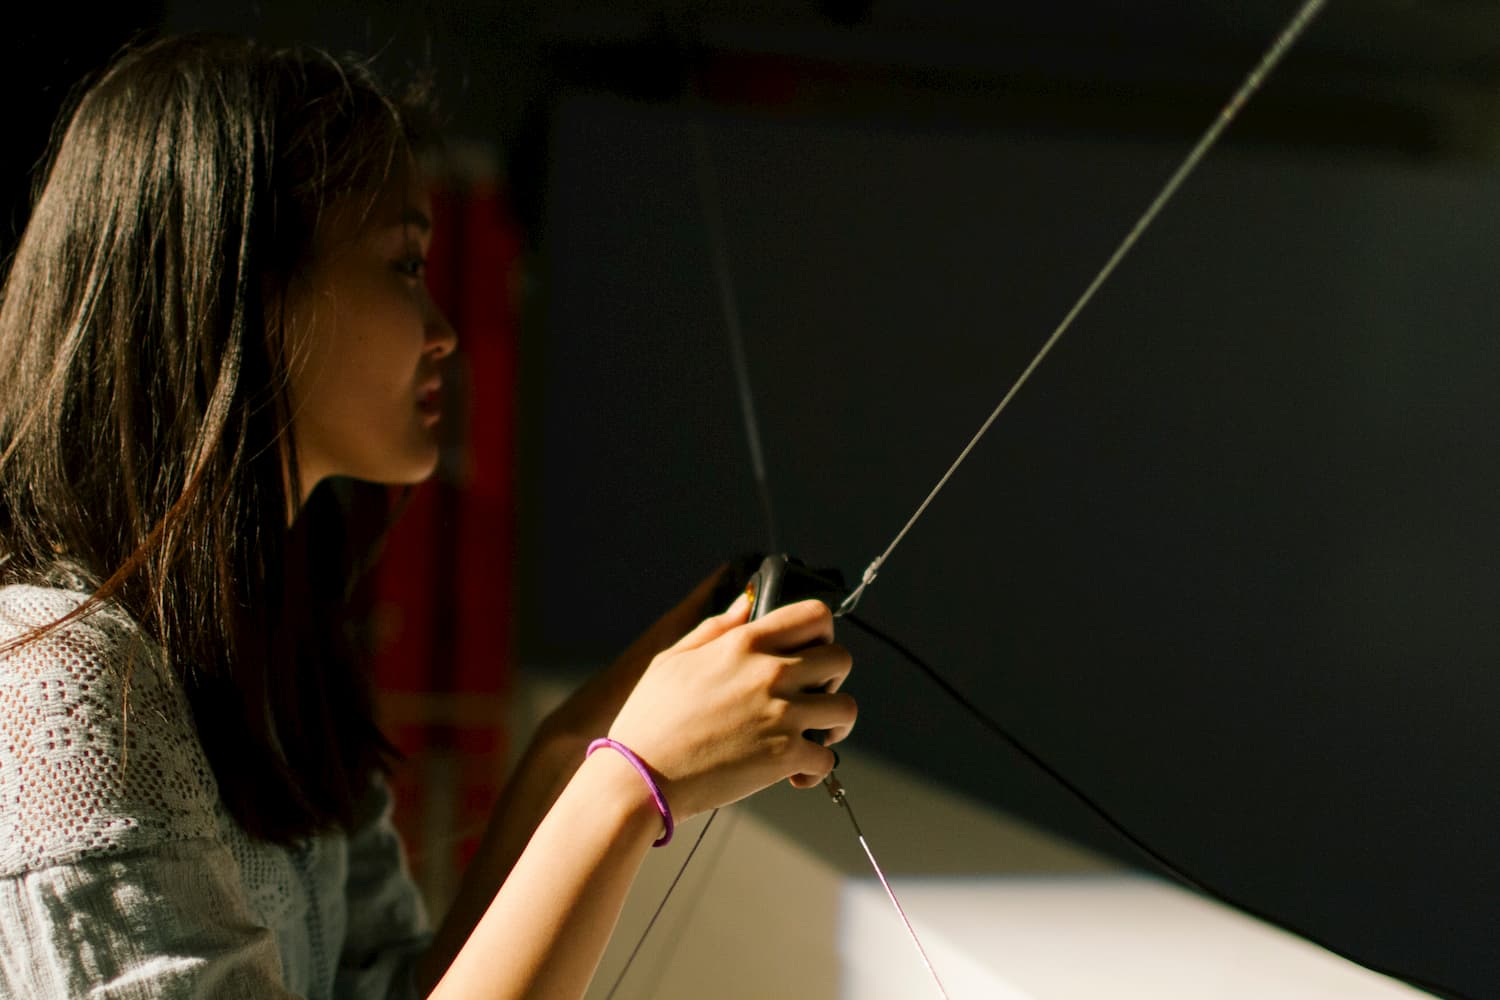 Person holding a video game controller during YOUJIN CHUNG's solo show.